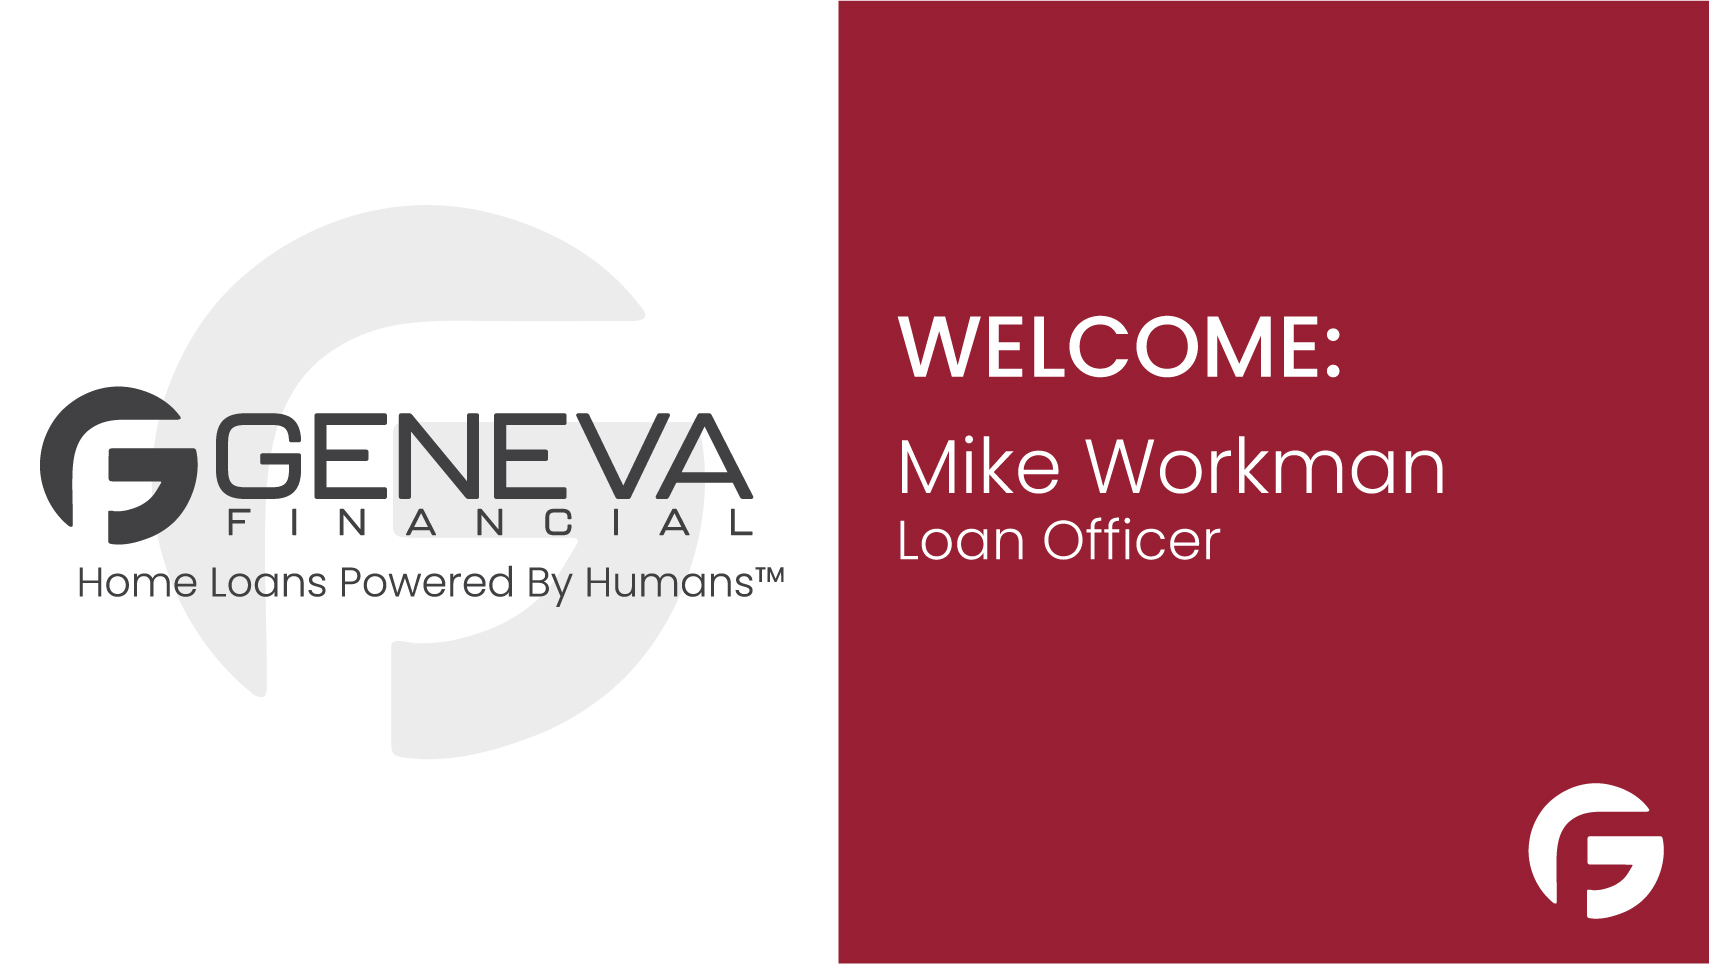 Mike Workman, Loan Officer, serving the state of Washington